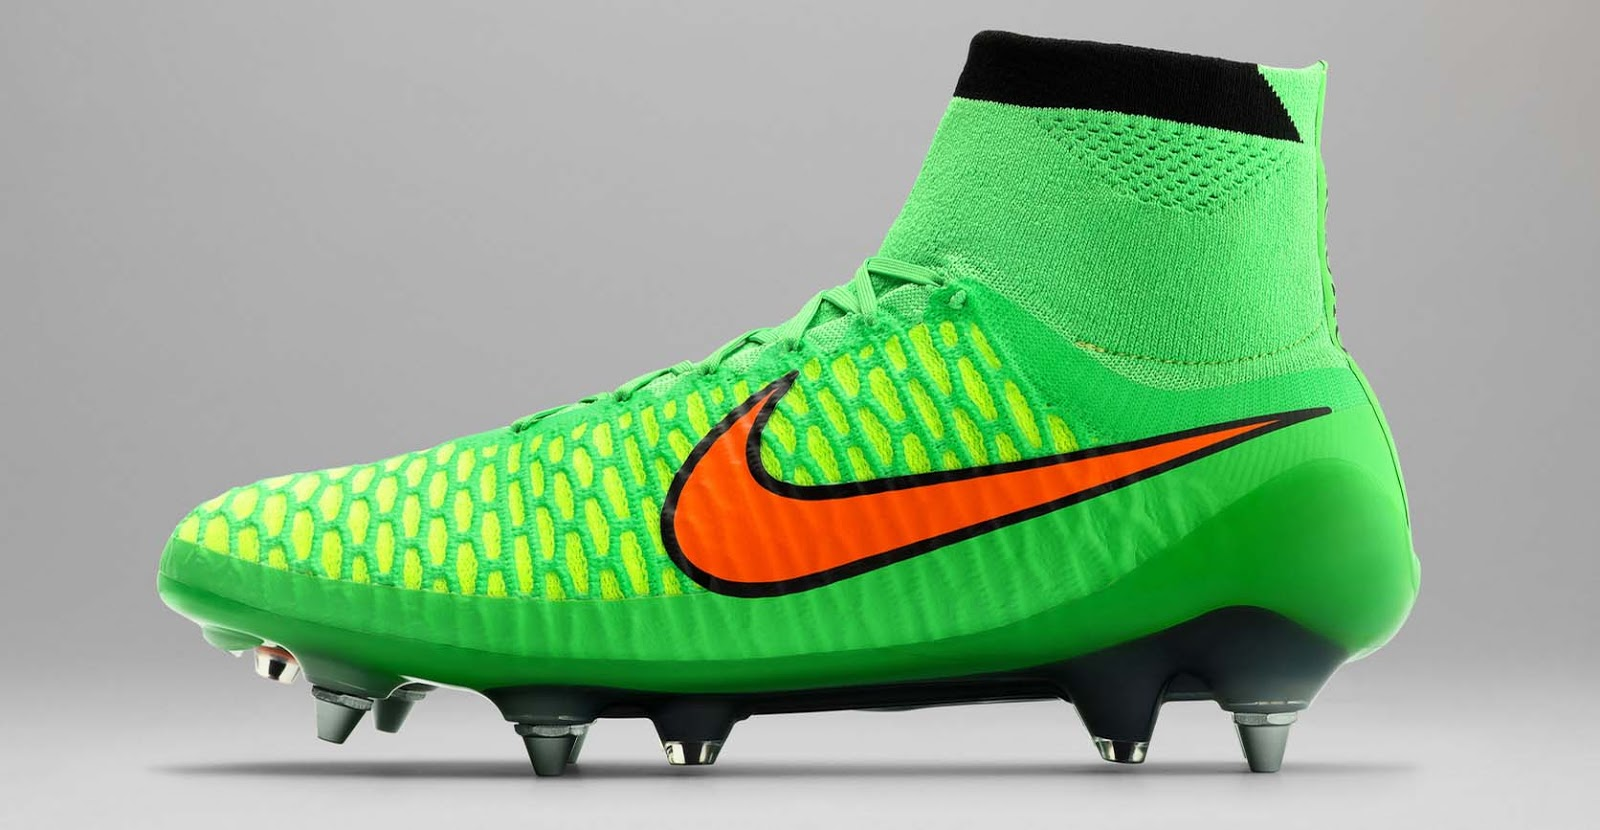 New Nike 2015 Football Boot Colorways - Nike Highlight Collection